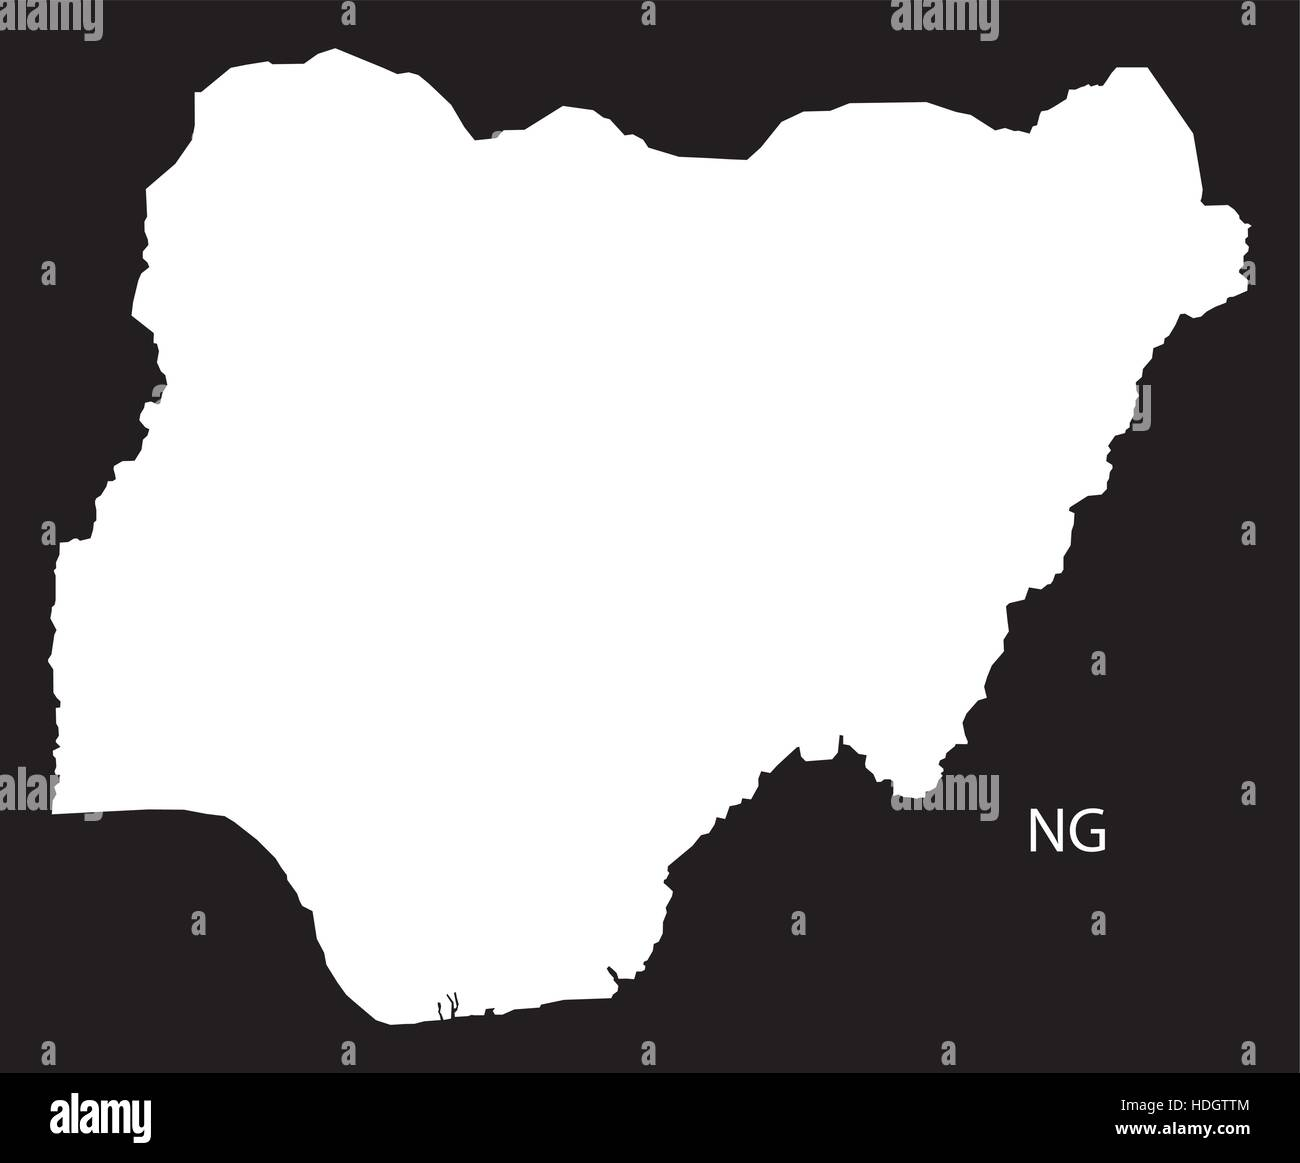 Nigeria Map black and white illustration - Stock Vector